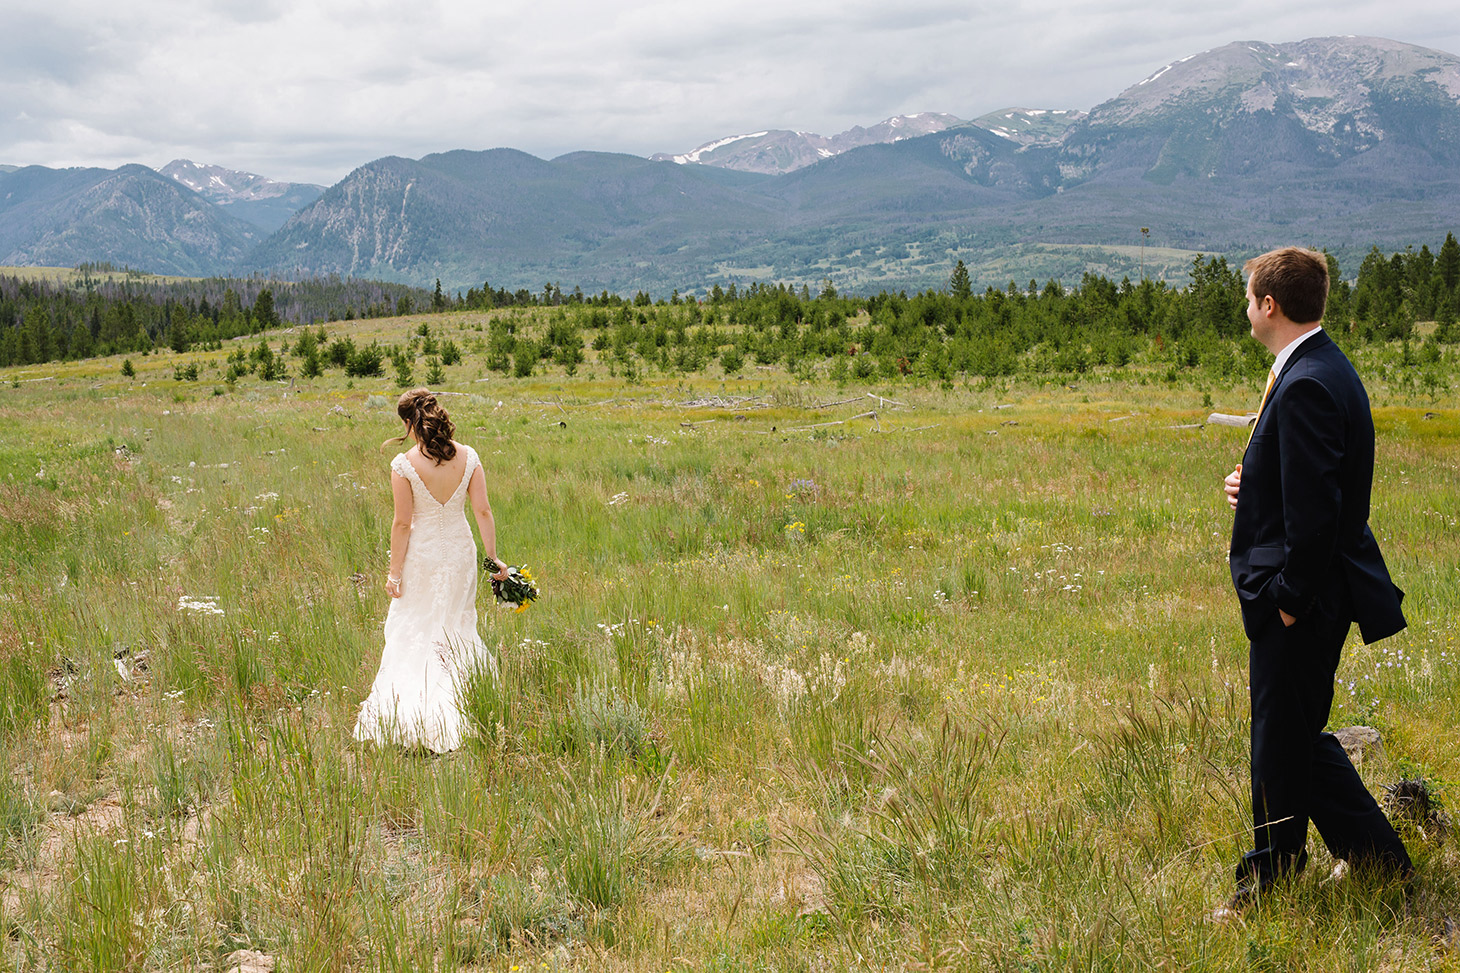 Megan-Newton-Photography-Best-Wedding-Photos-2015-120